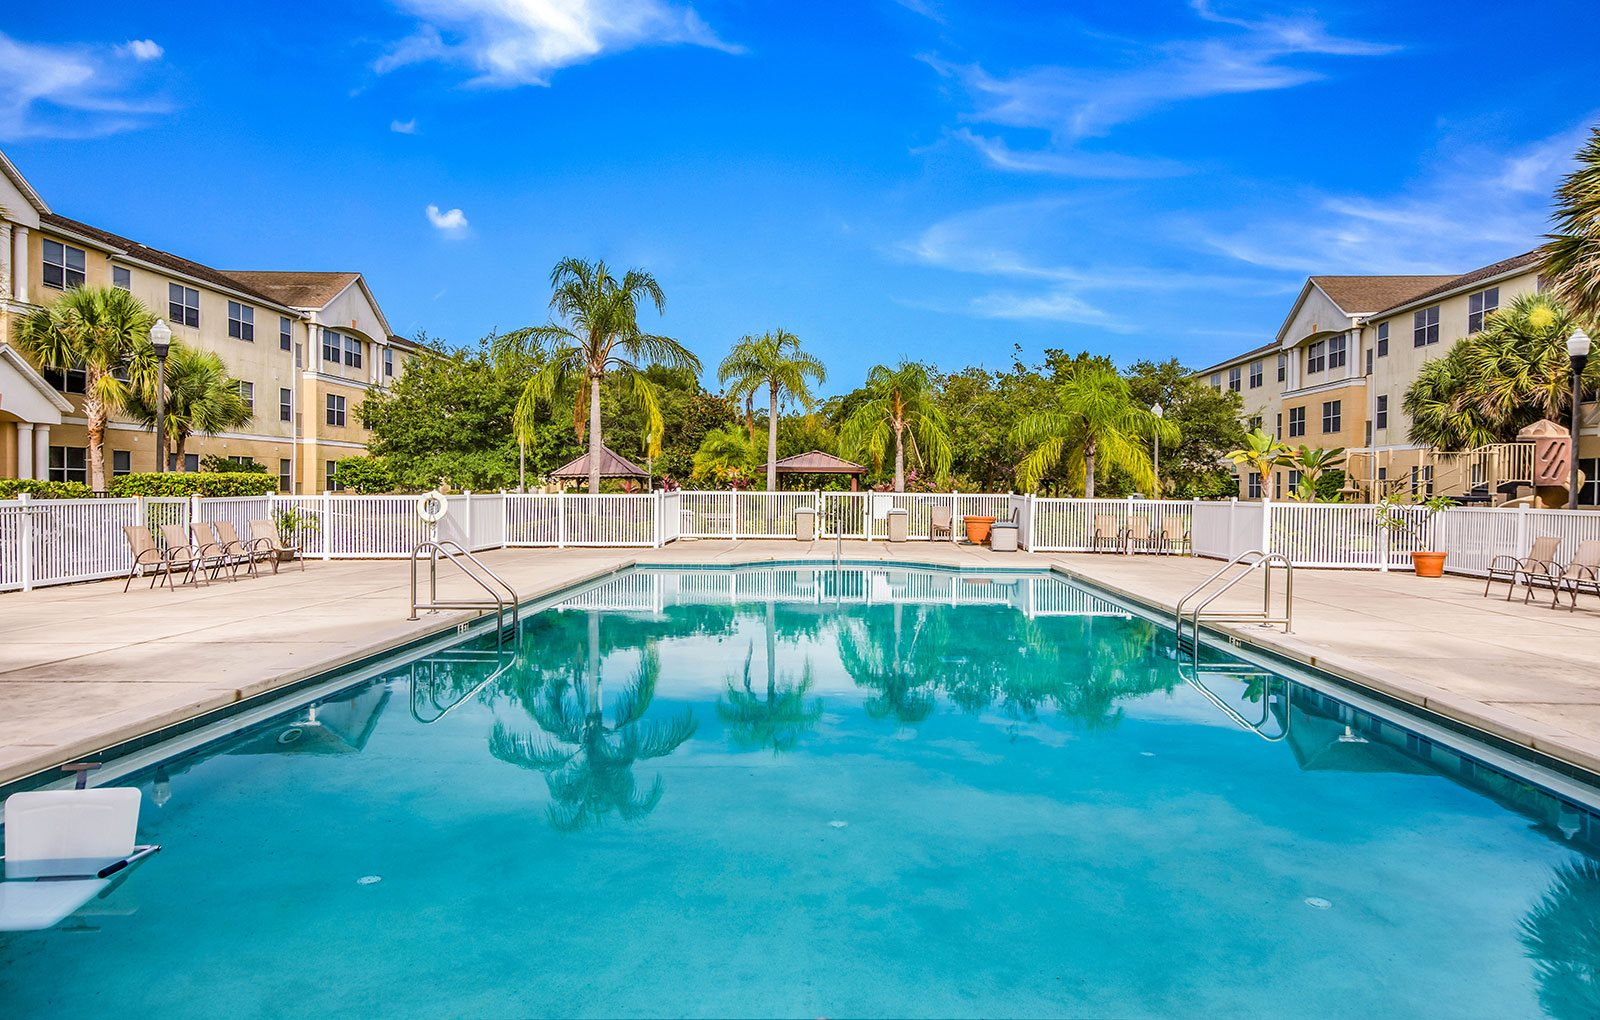 Outdoor swimming pool_Lexington Club at Renaissance Square, Clearwater, FL